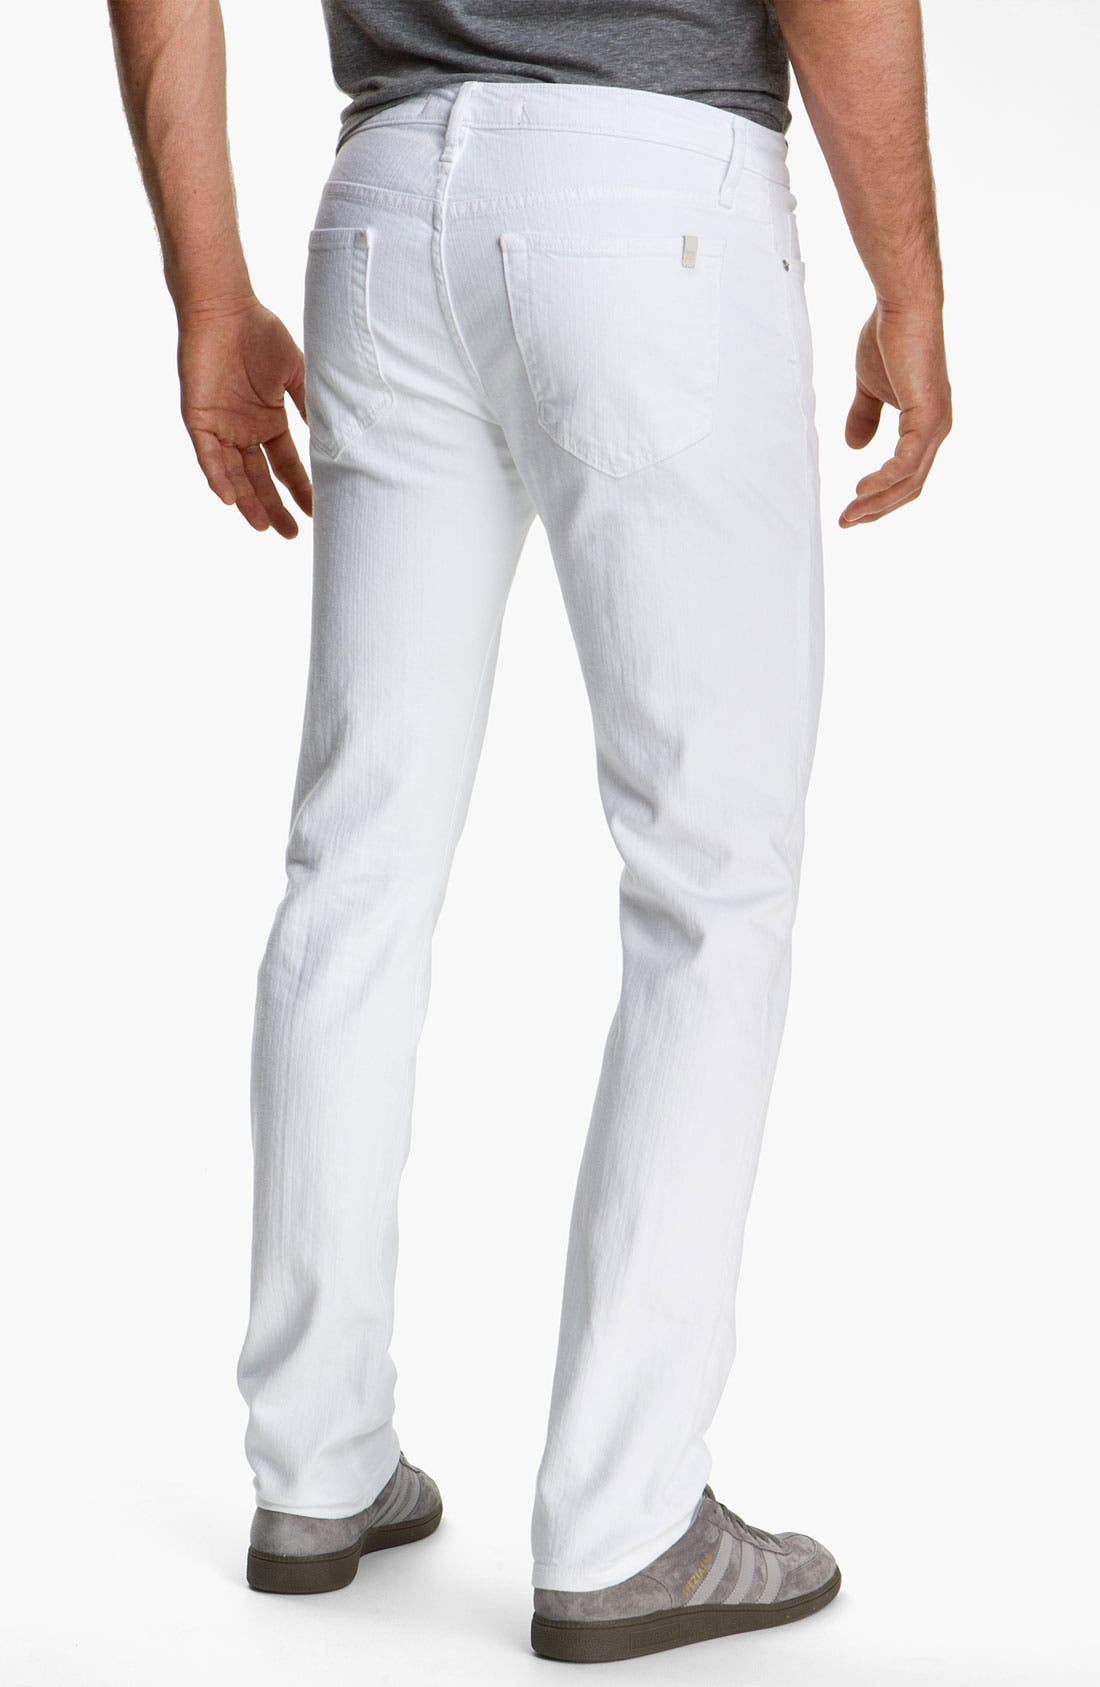 Alternate Image 1 Selected - Joe's 'Brixton' Slim Straight Leg Jeans (Optic White)